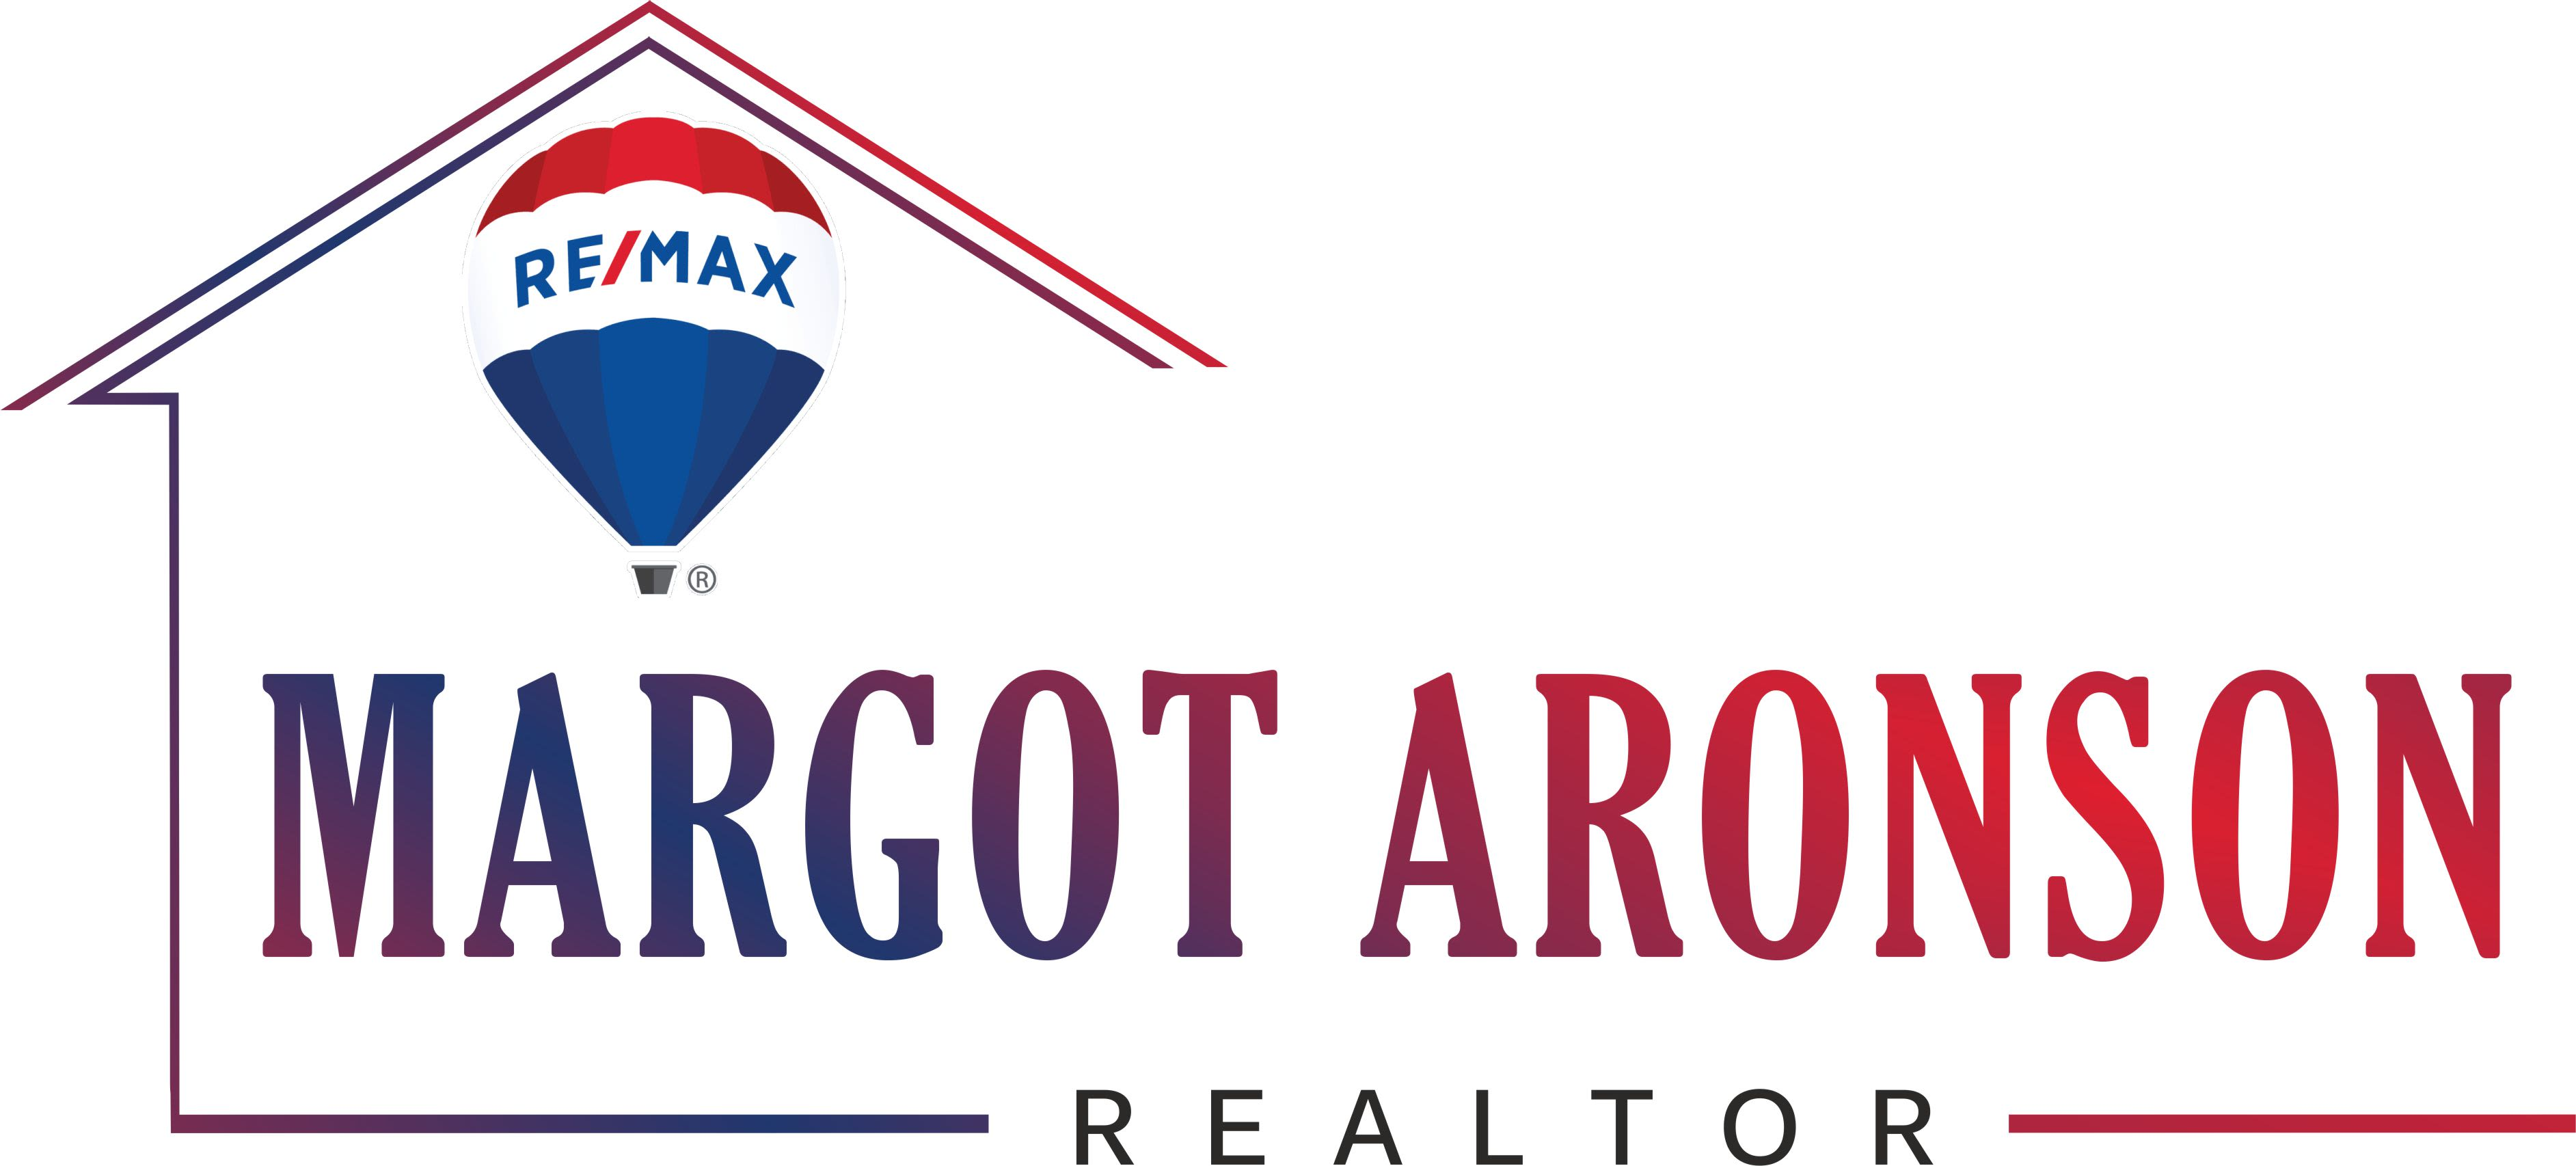 Margot Aronson, Realtor